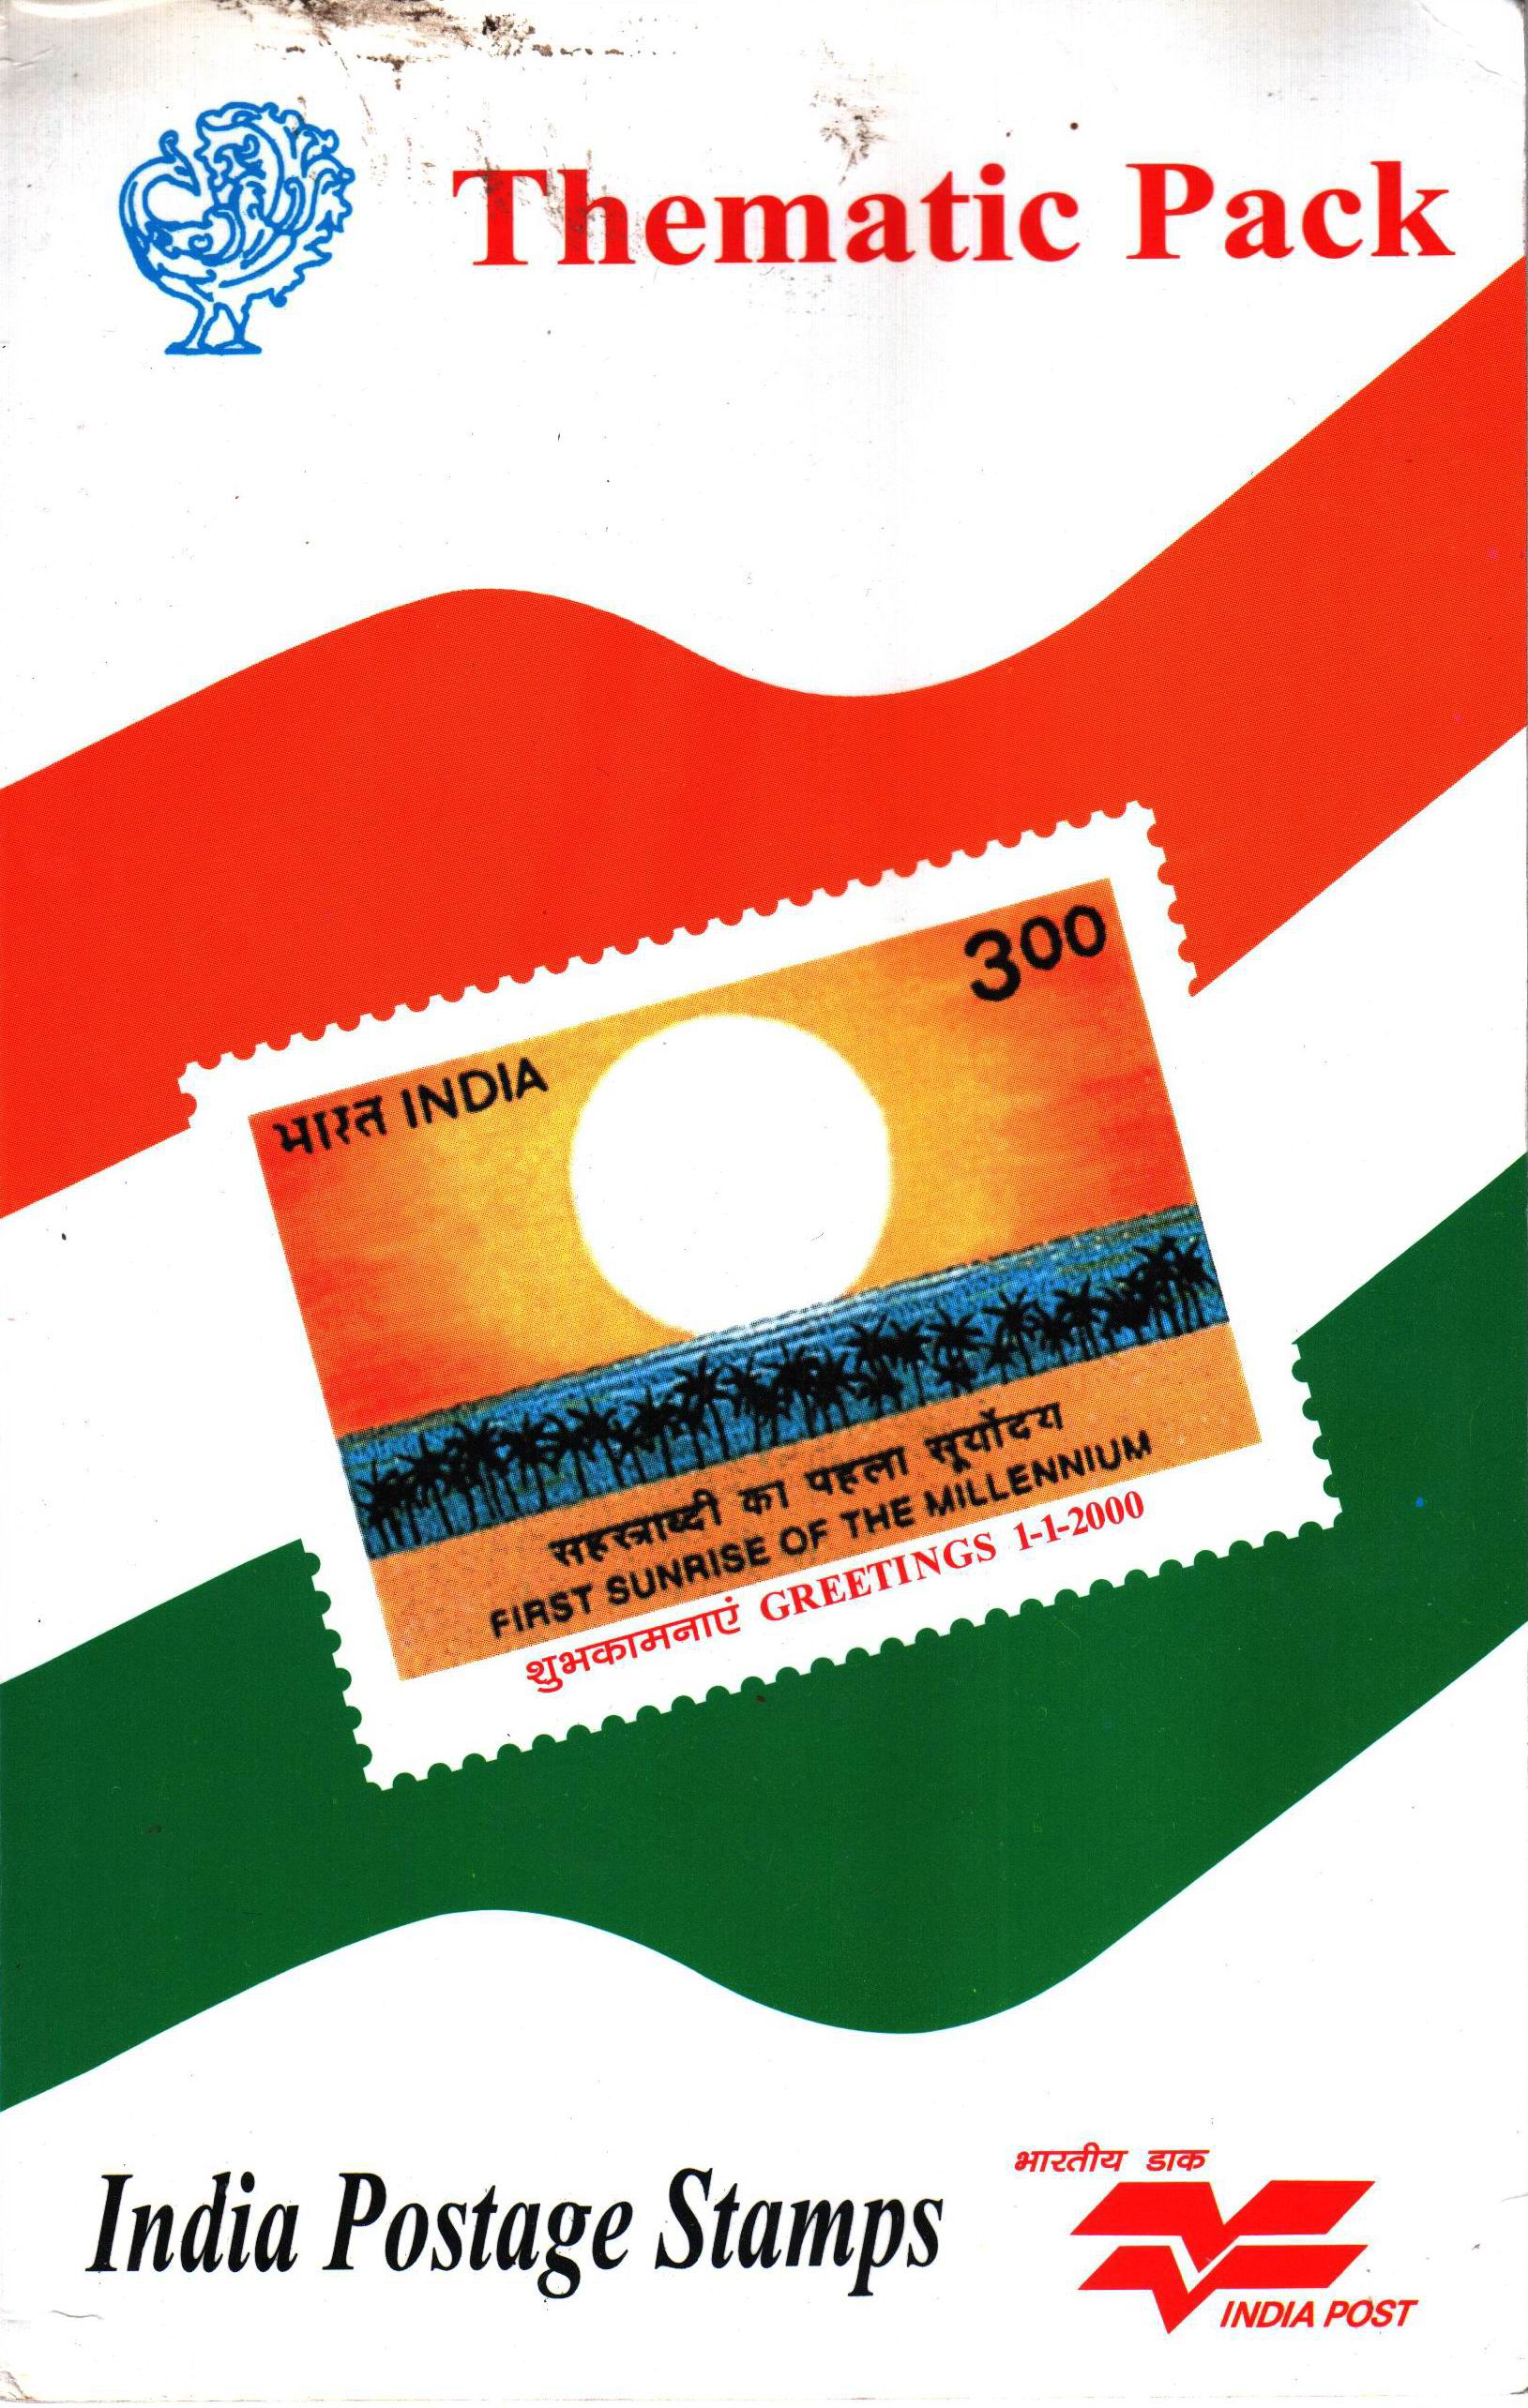 India 2000 Special Thematic Pack Migratory Birds Etc